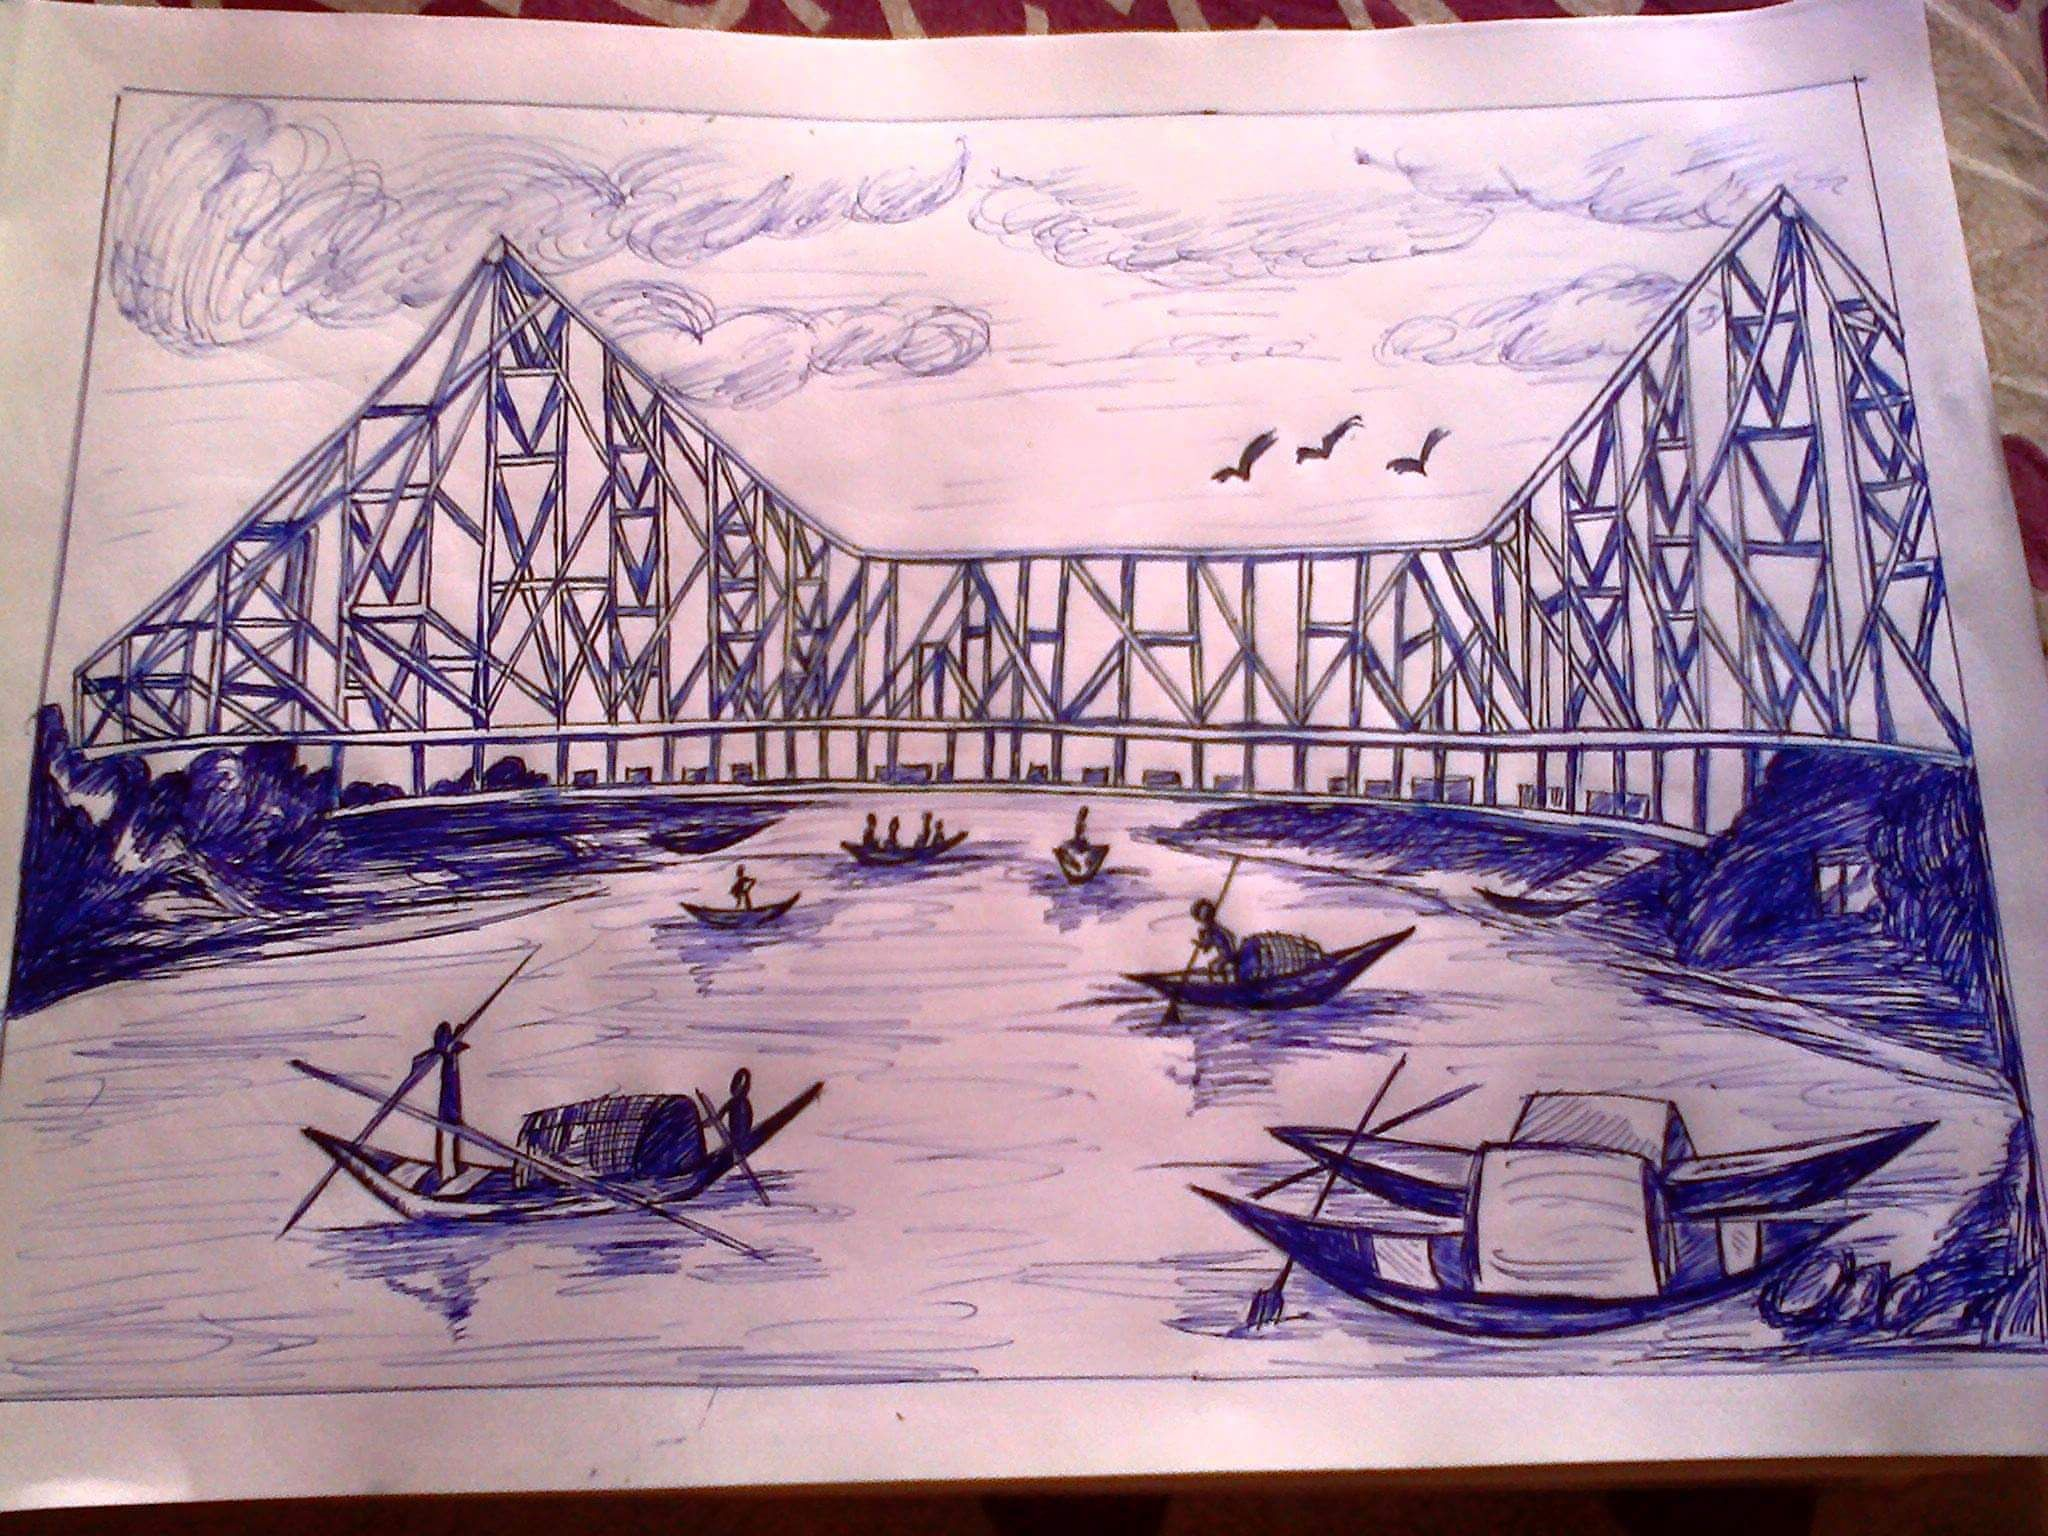 Pen sketching of howrah bridge inspired from another pencil sketching